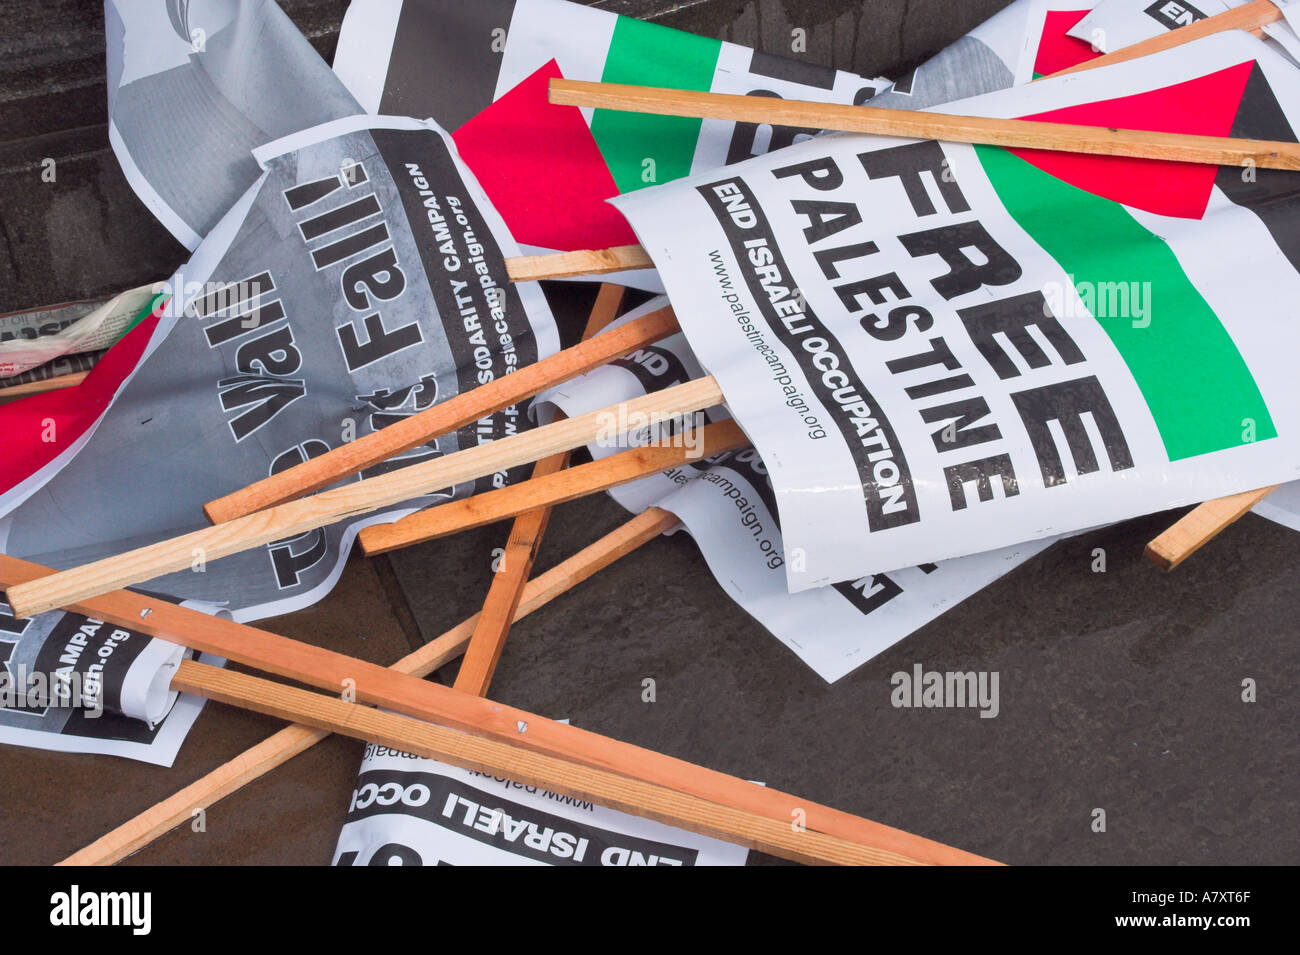 Free Palestine Demonstration discarded placards in London UK - Stock Image